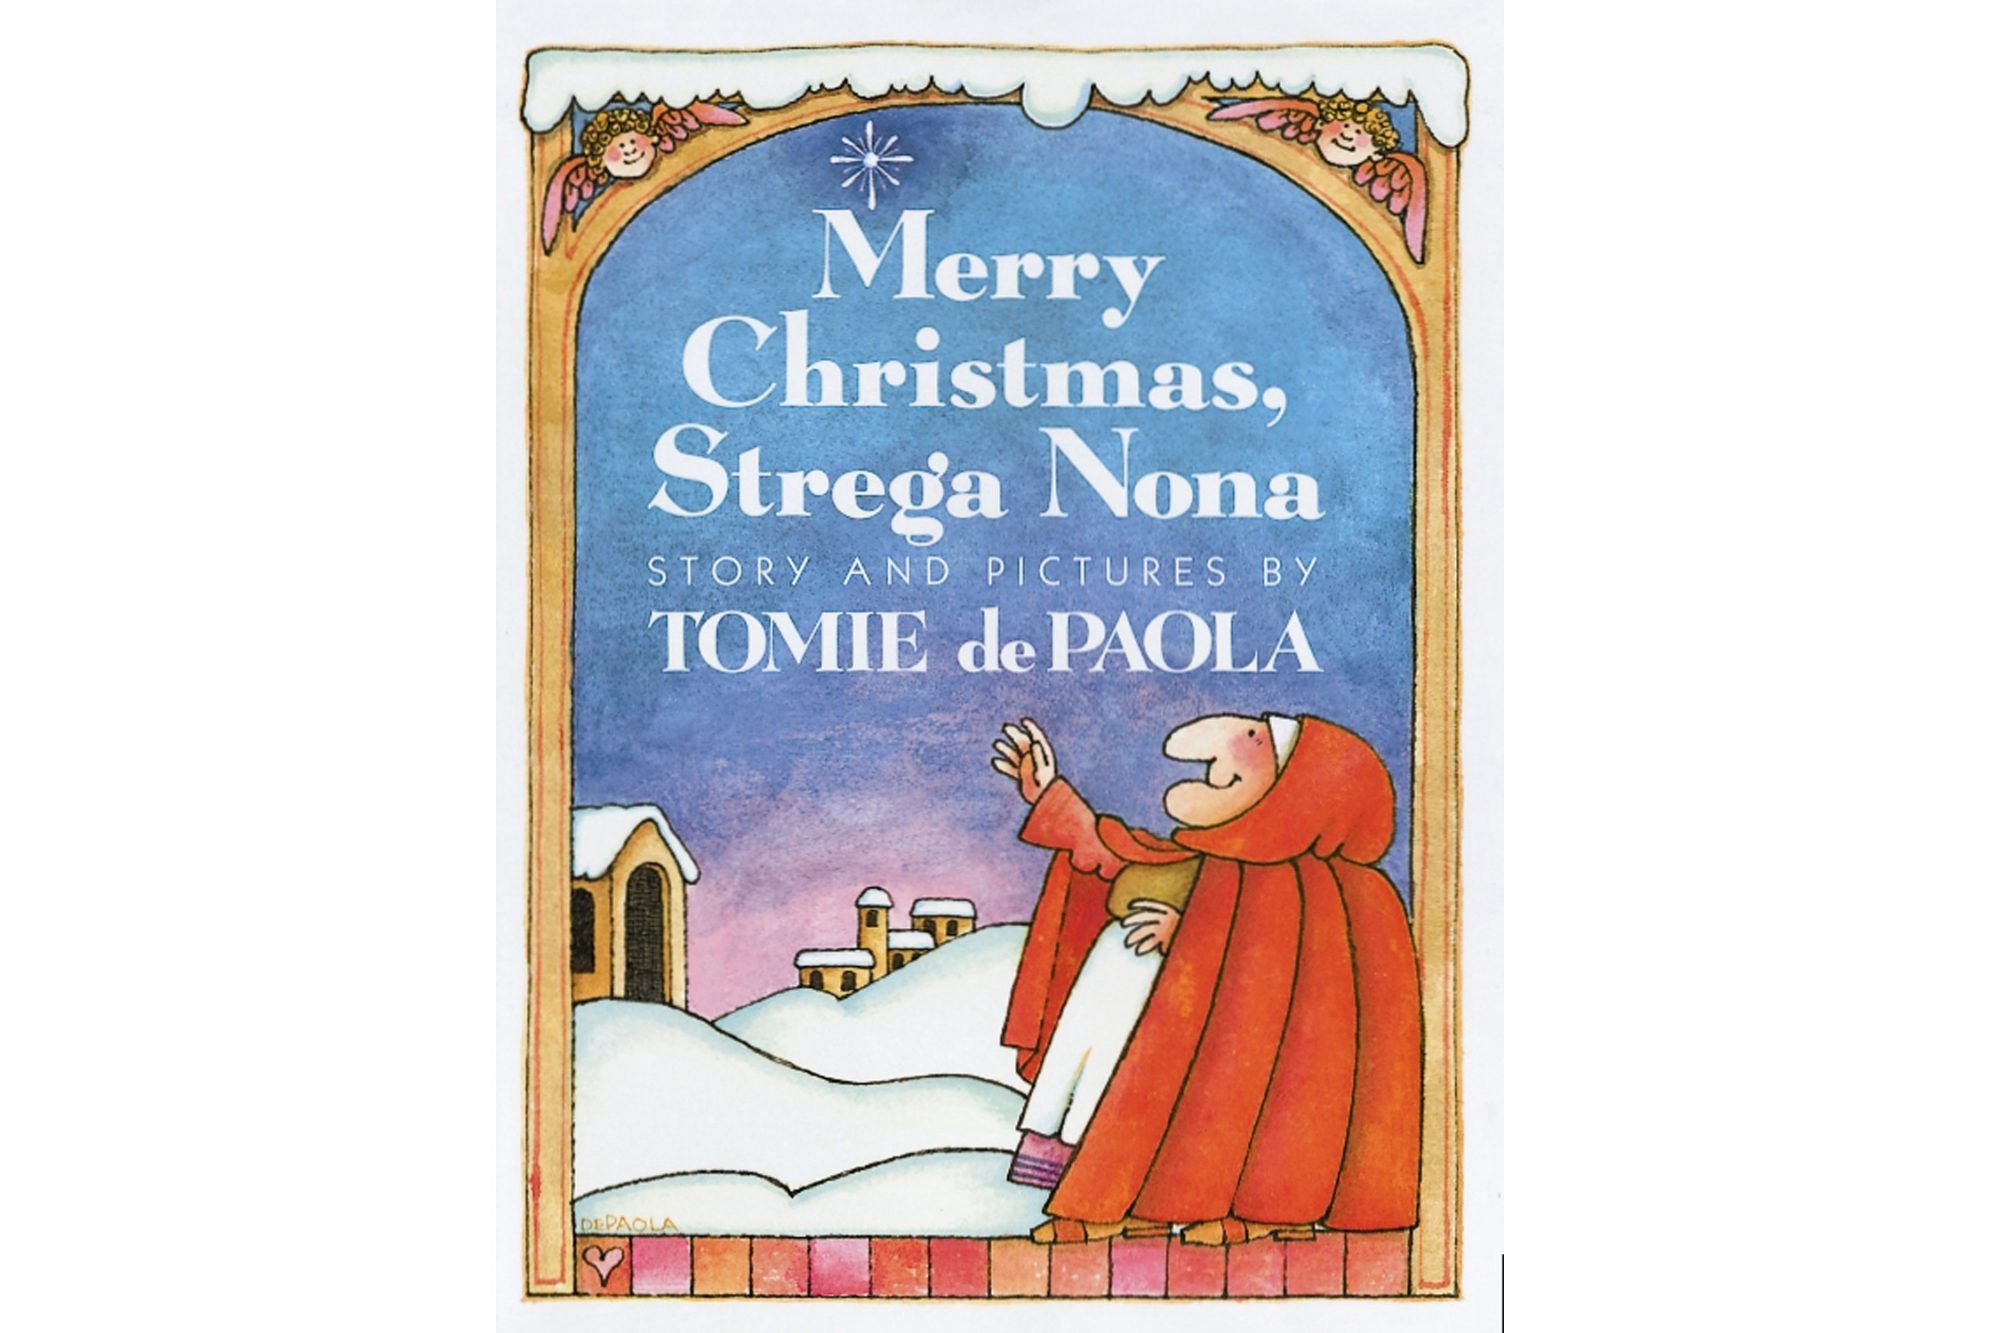 Merry Christmas, Strega Nona, by Tomie dePaola